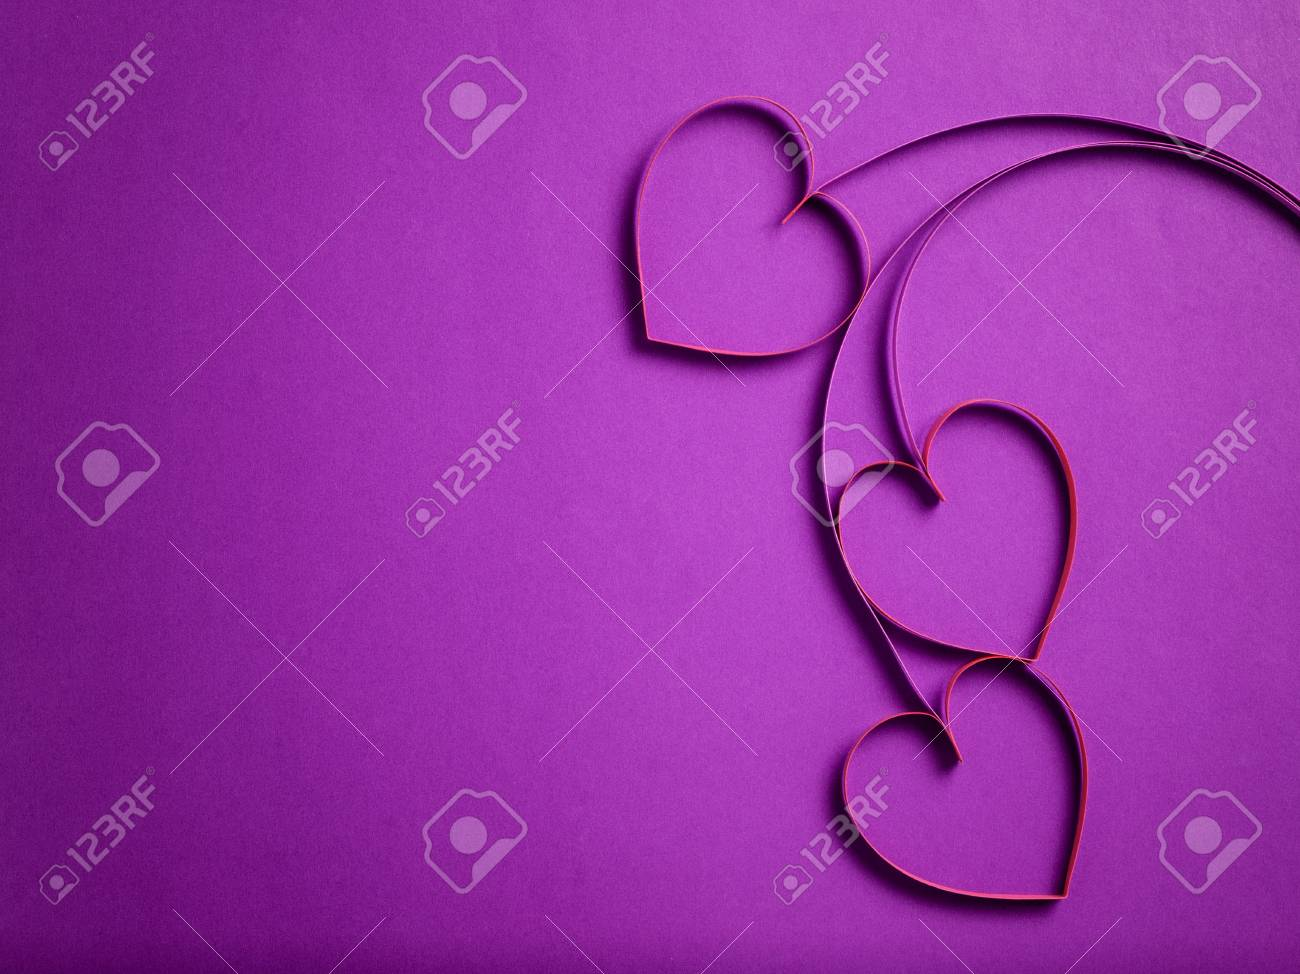 Quilling Paper Hearts Like Flowers Valentines Day Background Stock